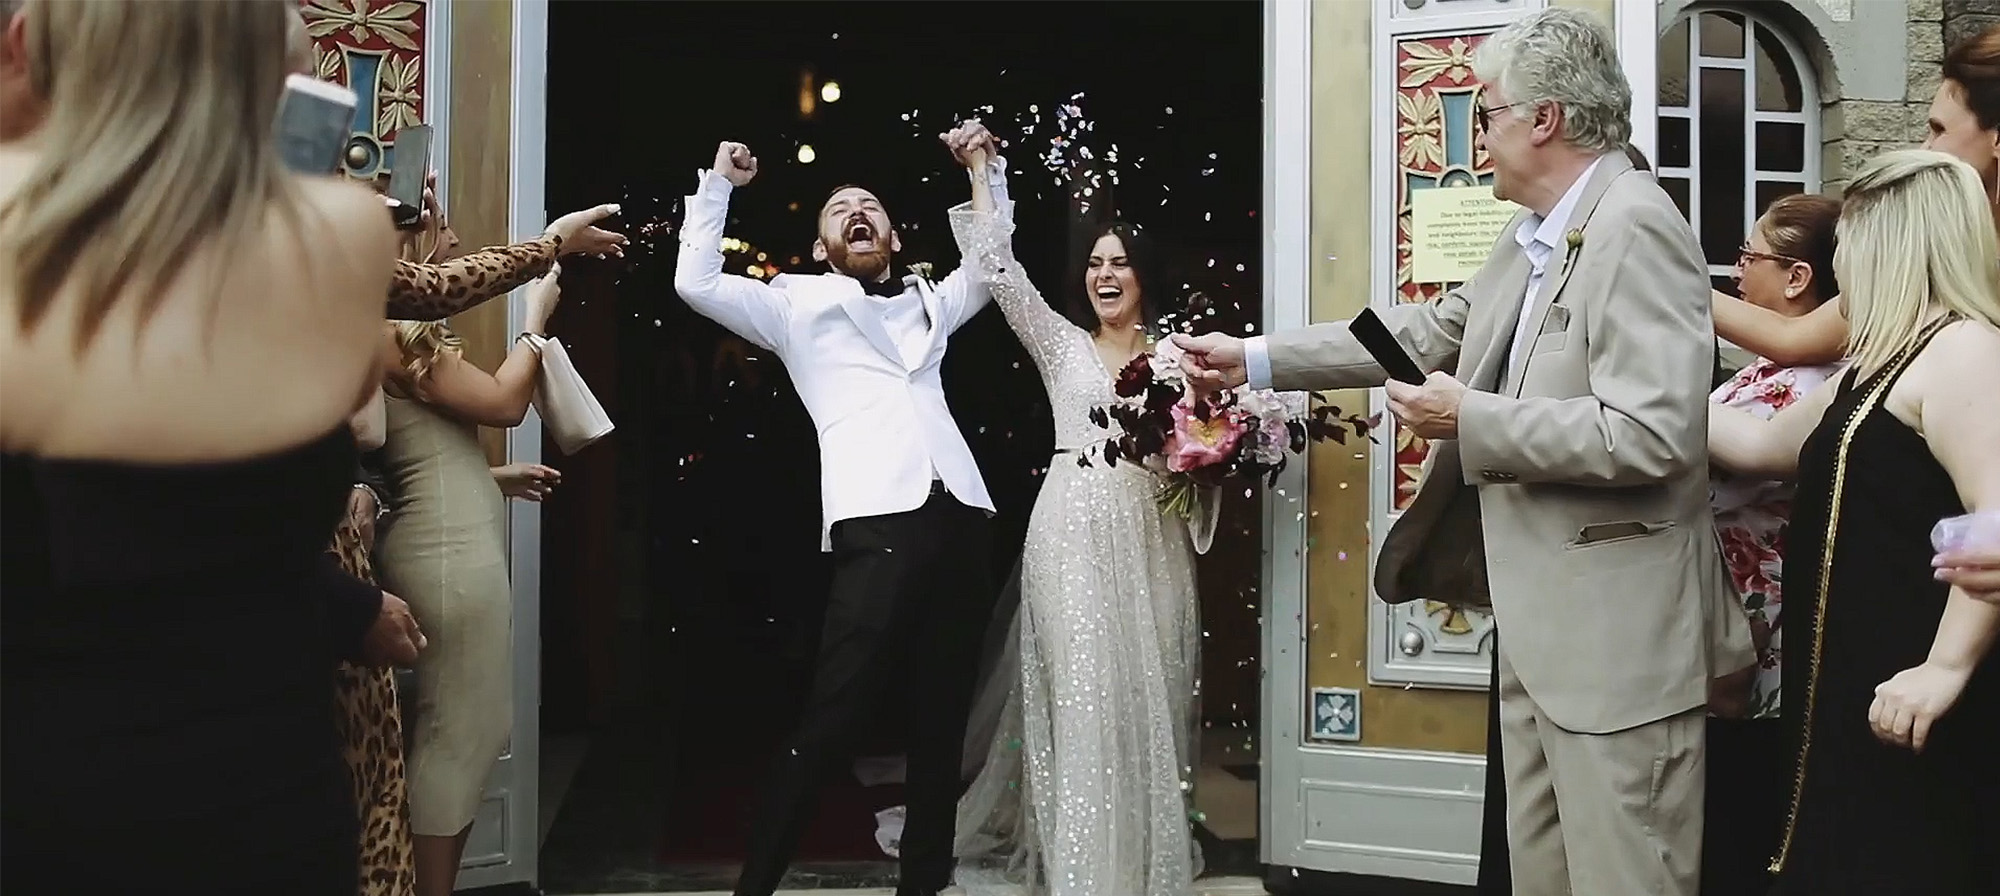 Annette-and-Dani-Films-Kat and Nick3-wedding-video.jpg